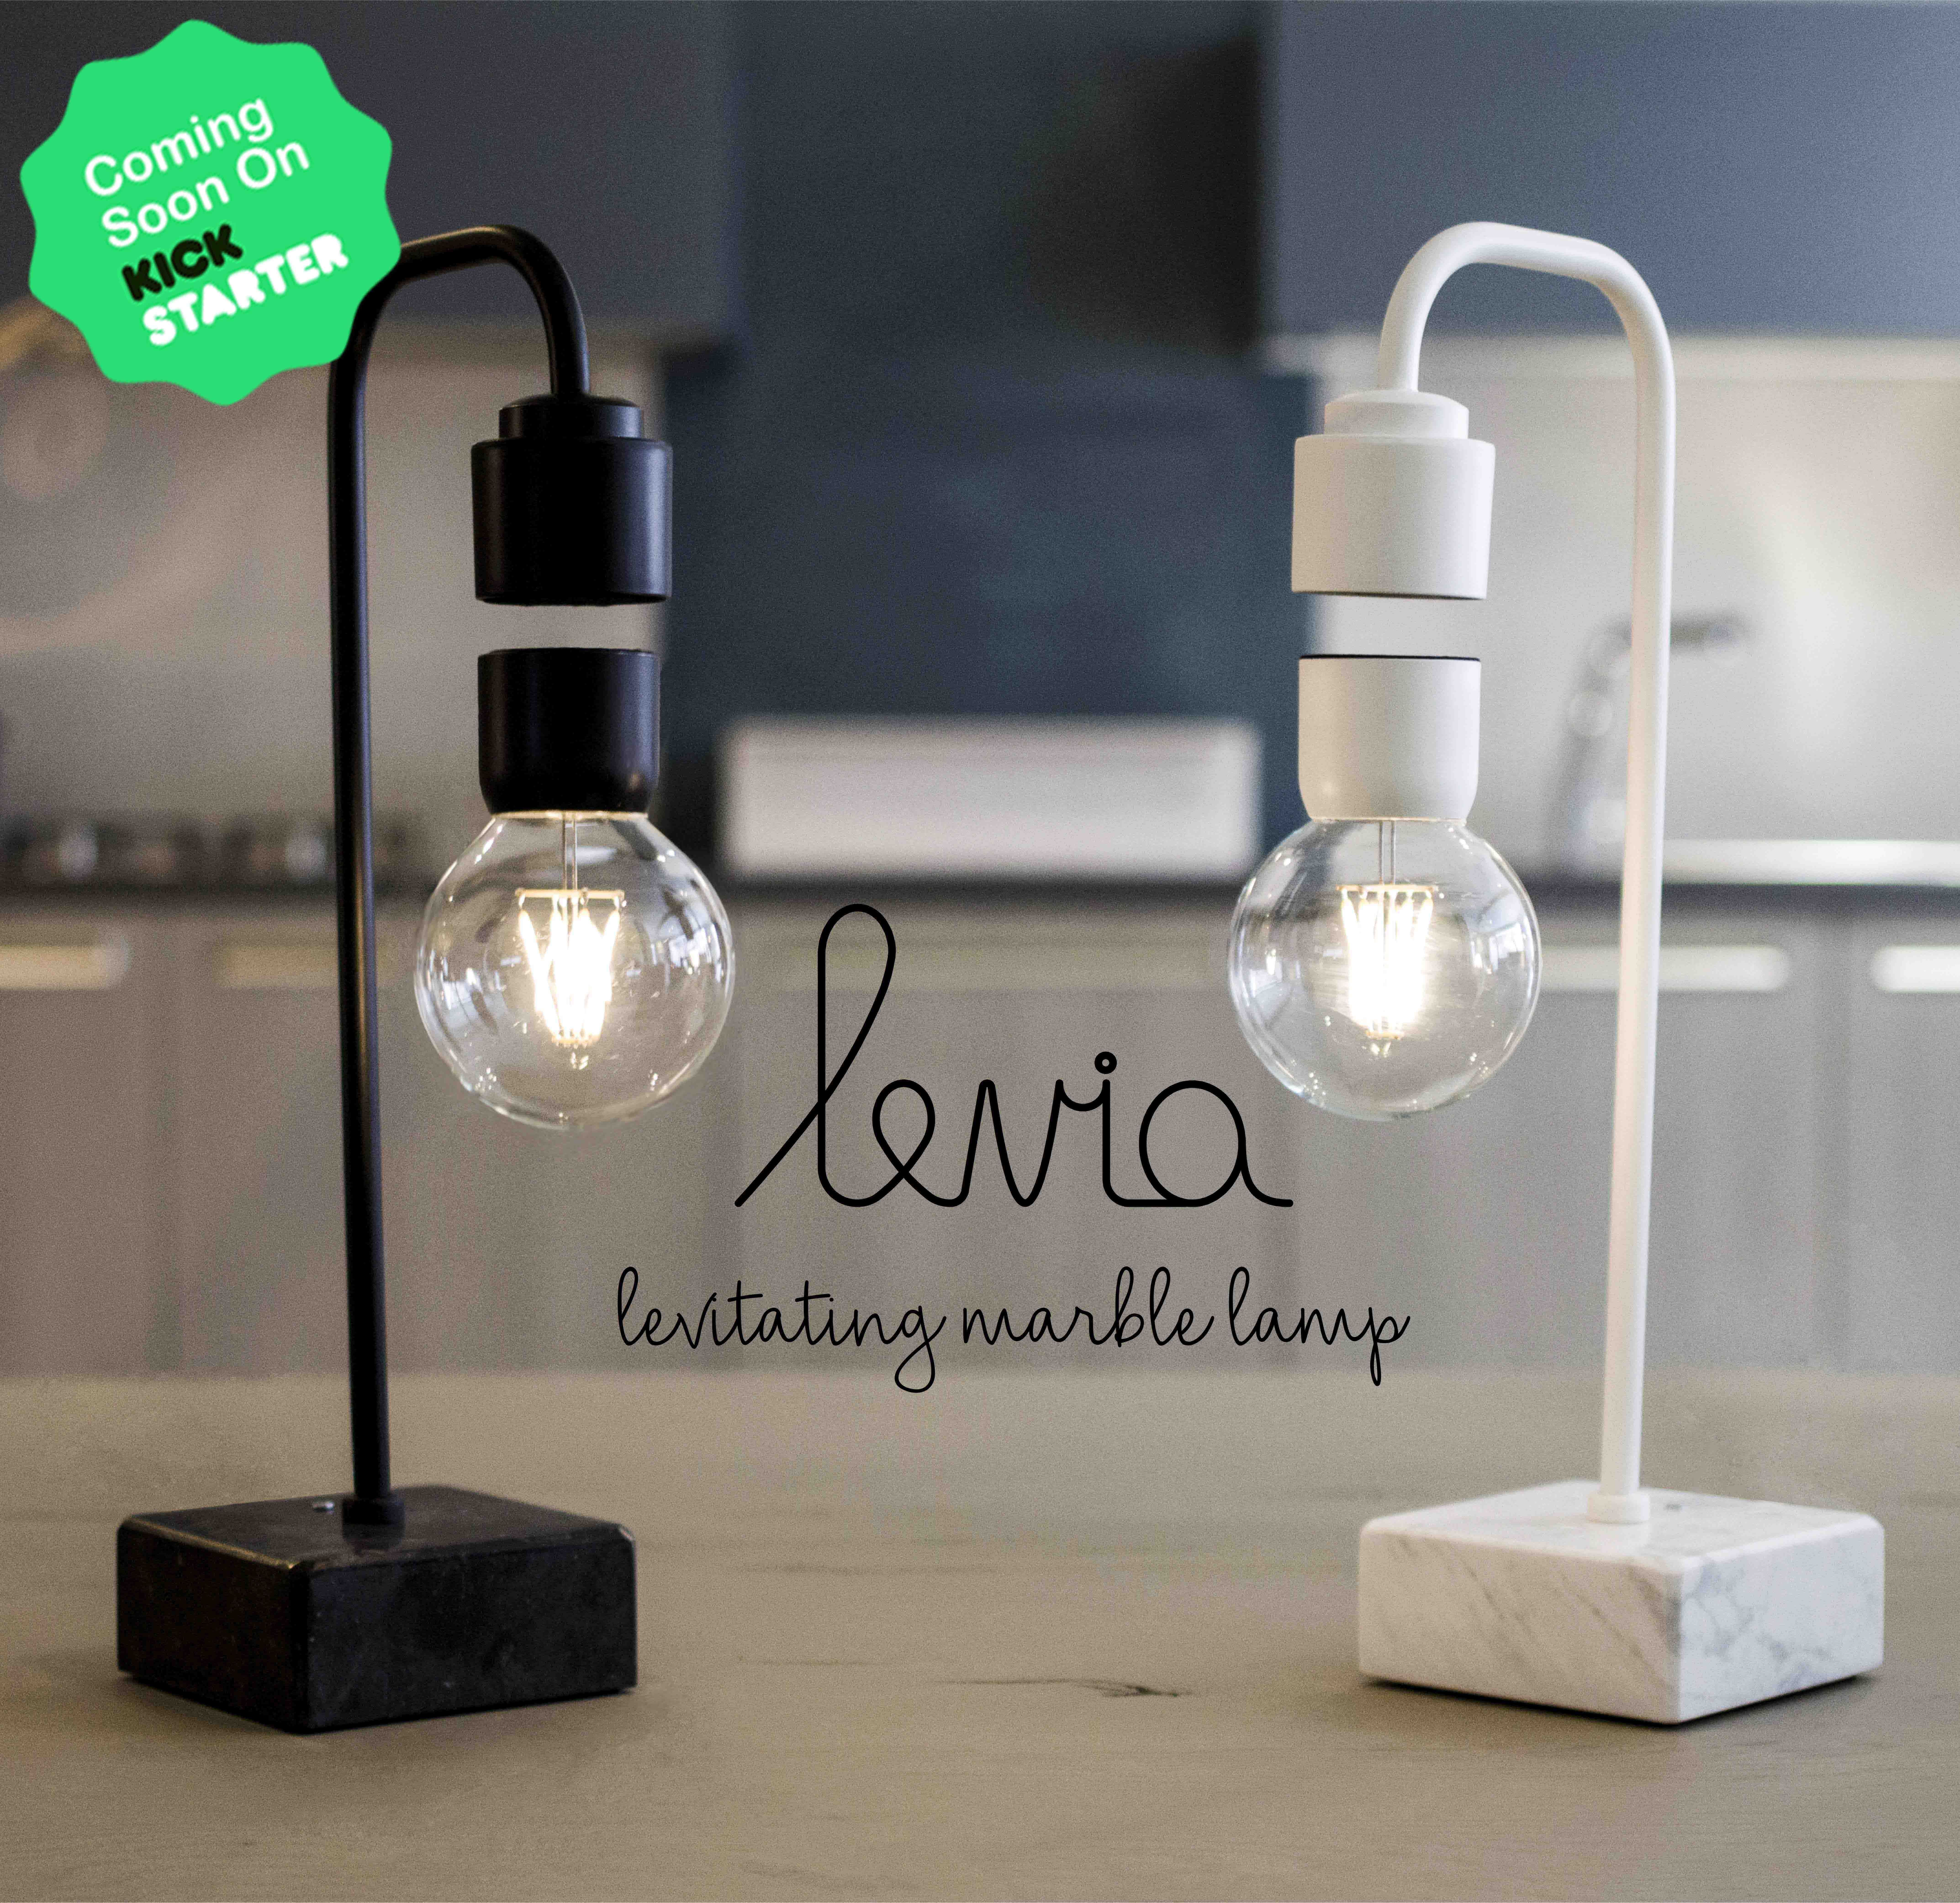 Talk About Levia On Unilad Thank You Very Much For Your Support Idea3di Coming Soon On Kickstarter Levialight Indiego Lentillas Cosas Escritorio